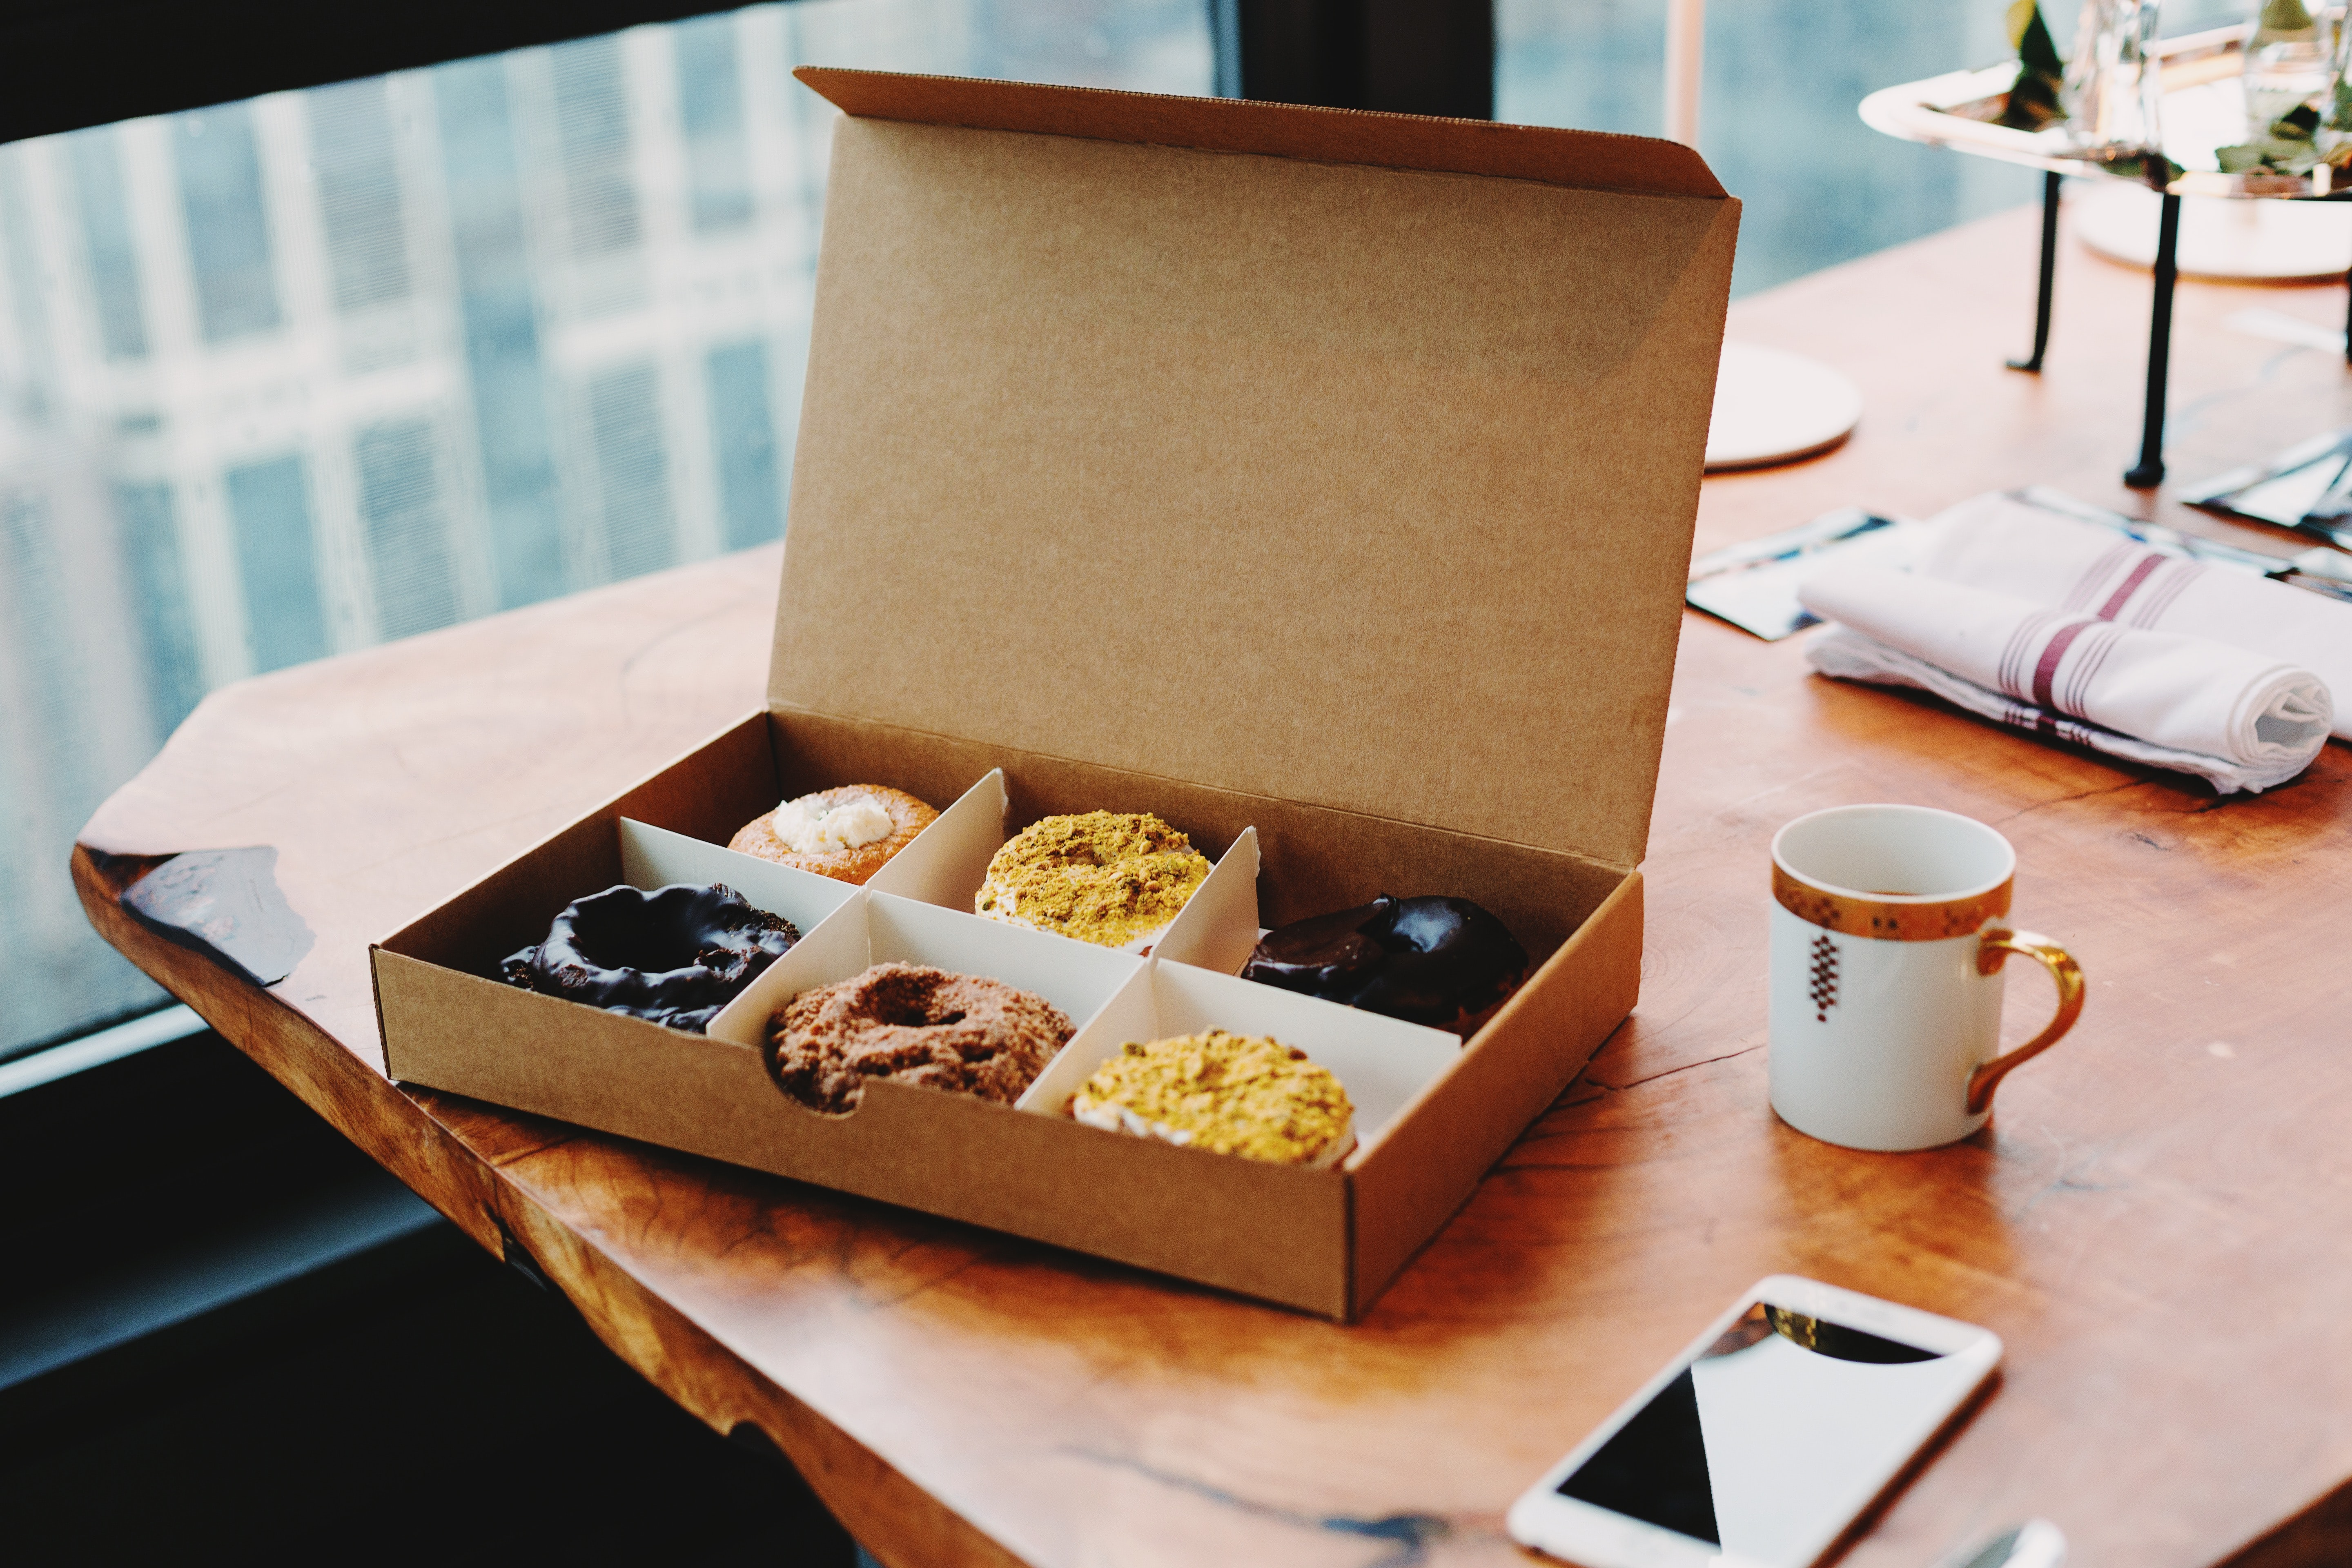 Various donuts in a cardboard box on a table